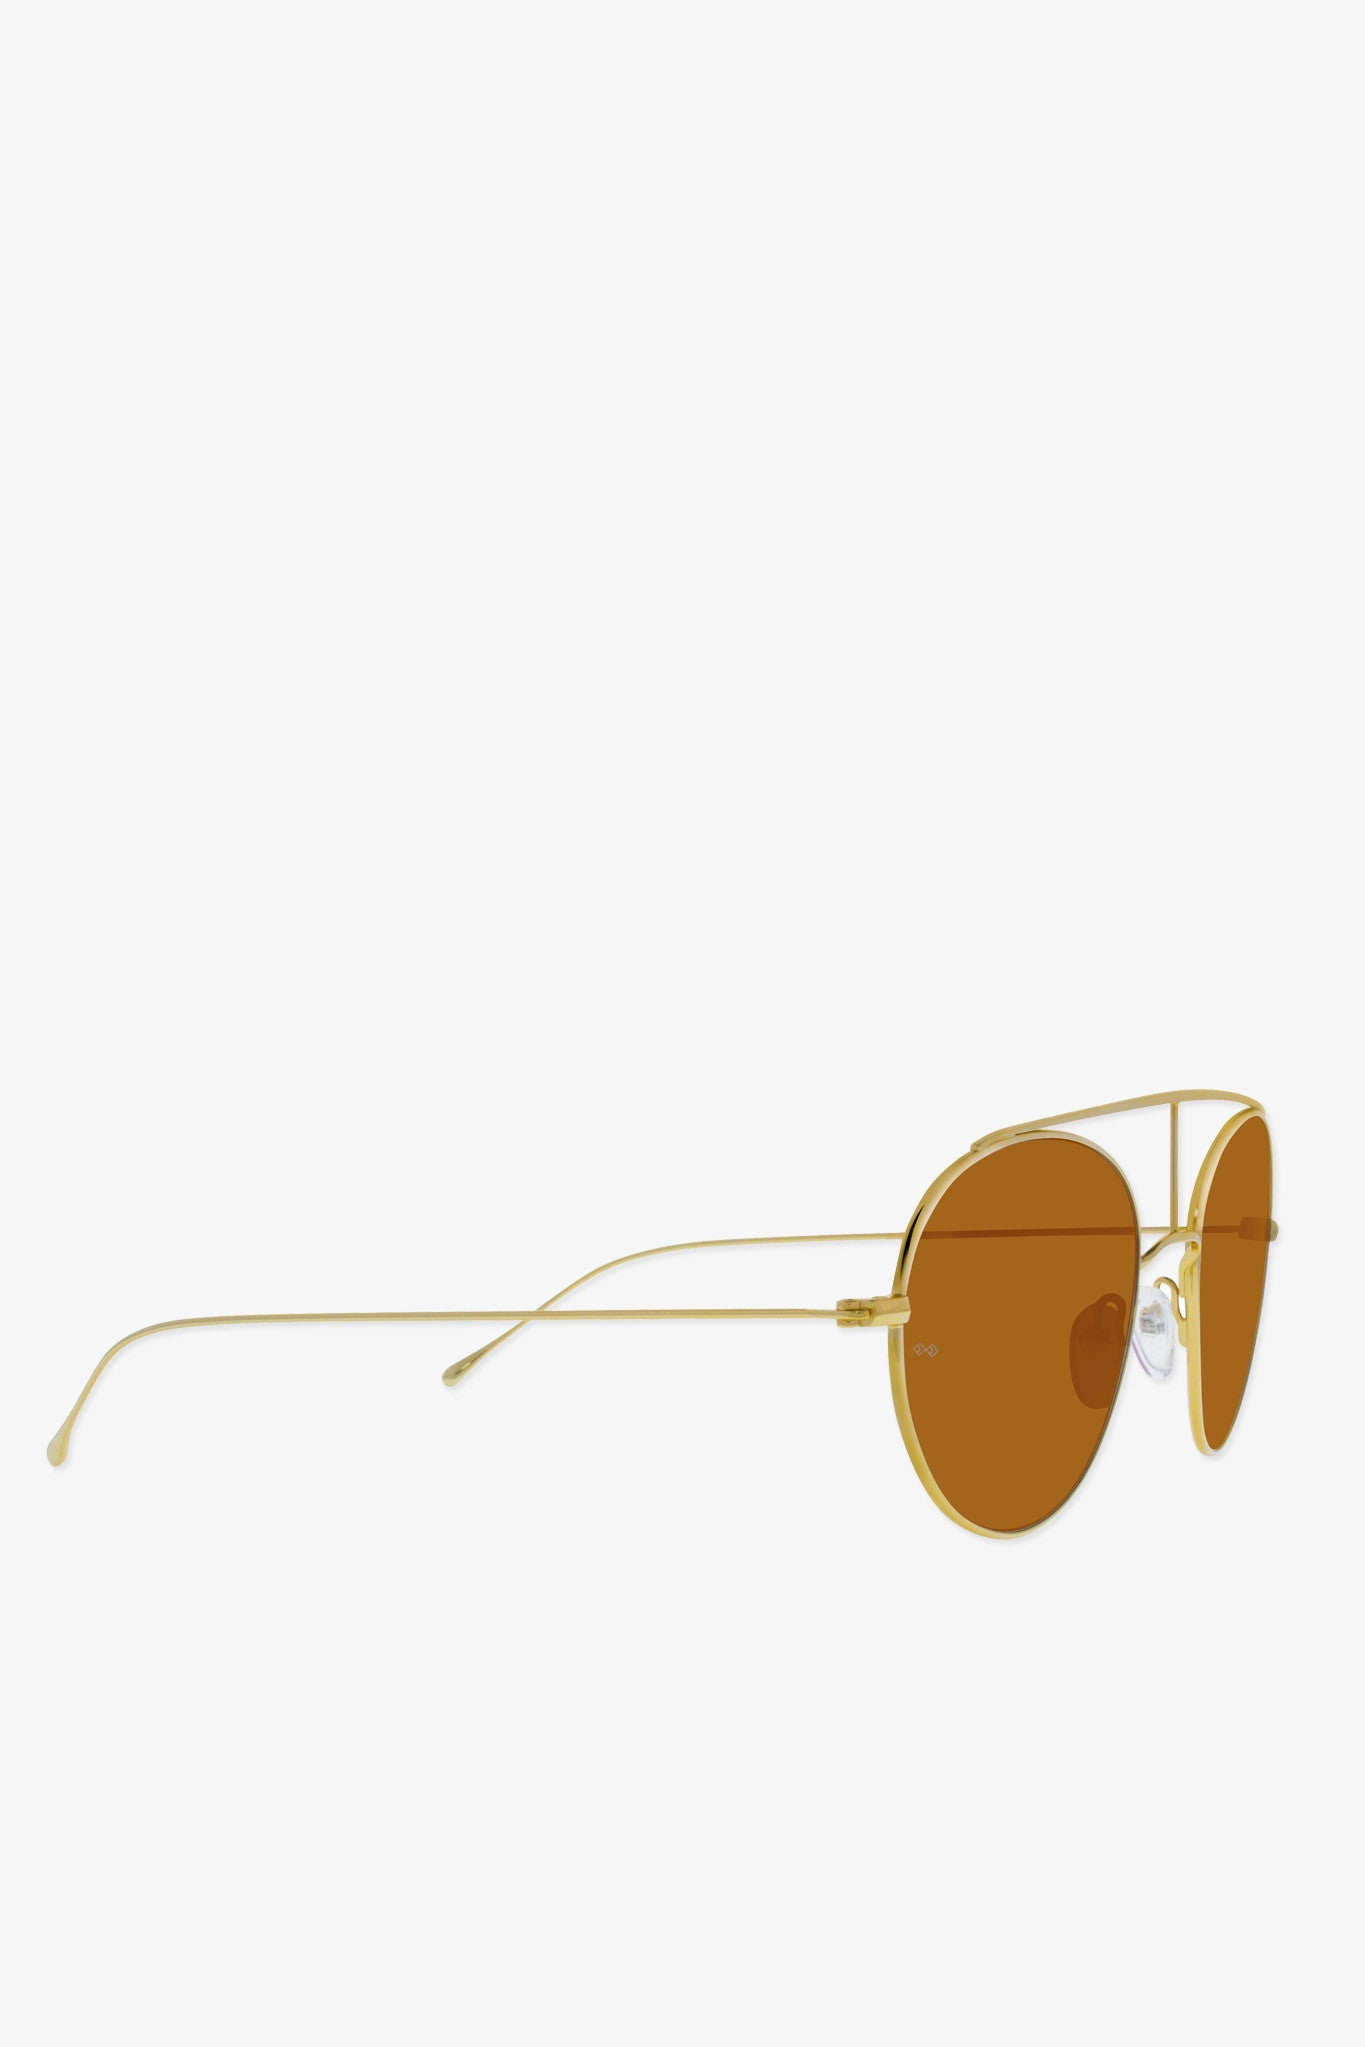 Smoke x Mirrors Geo 6 sunglasses in gold - Vert & Vogue